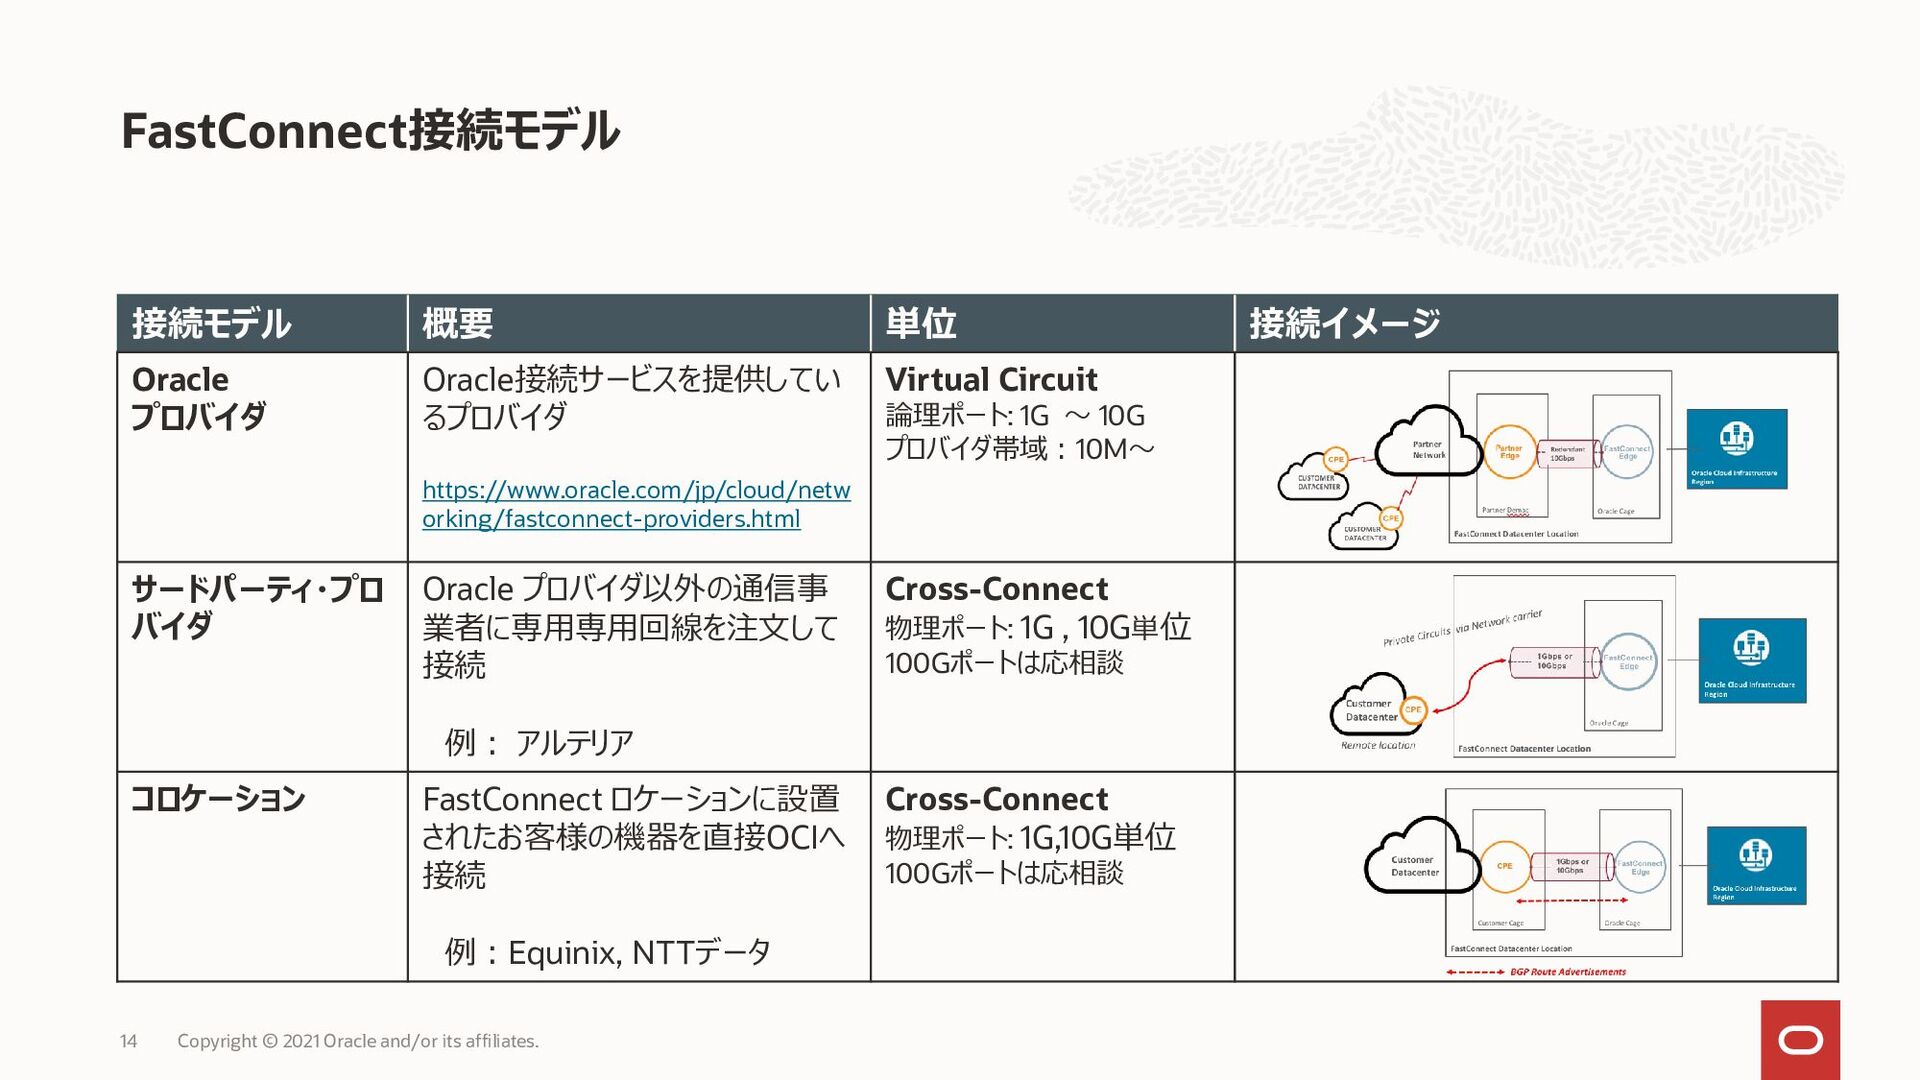 FastConnect接続モデル 14 接続モデル 概要 単位 接続イメージ Oracle プ...